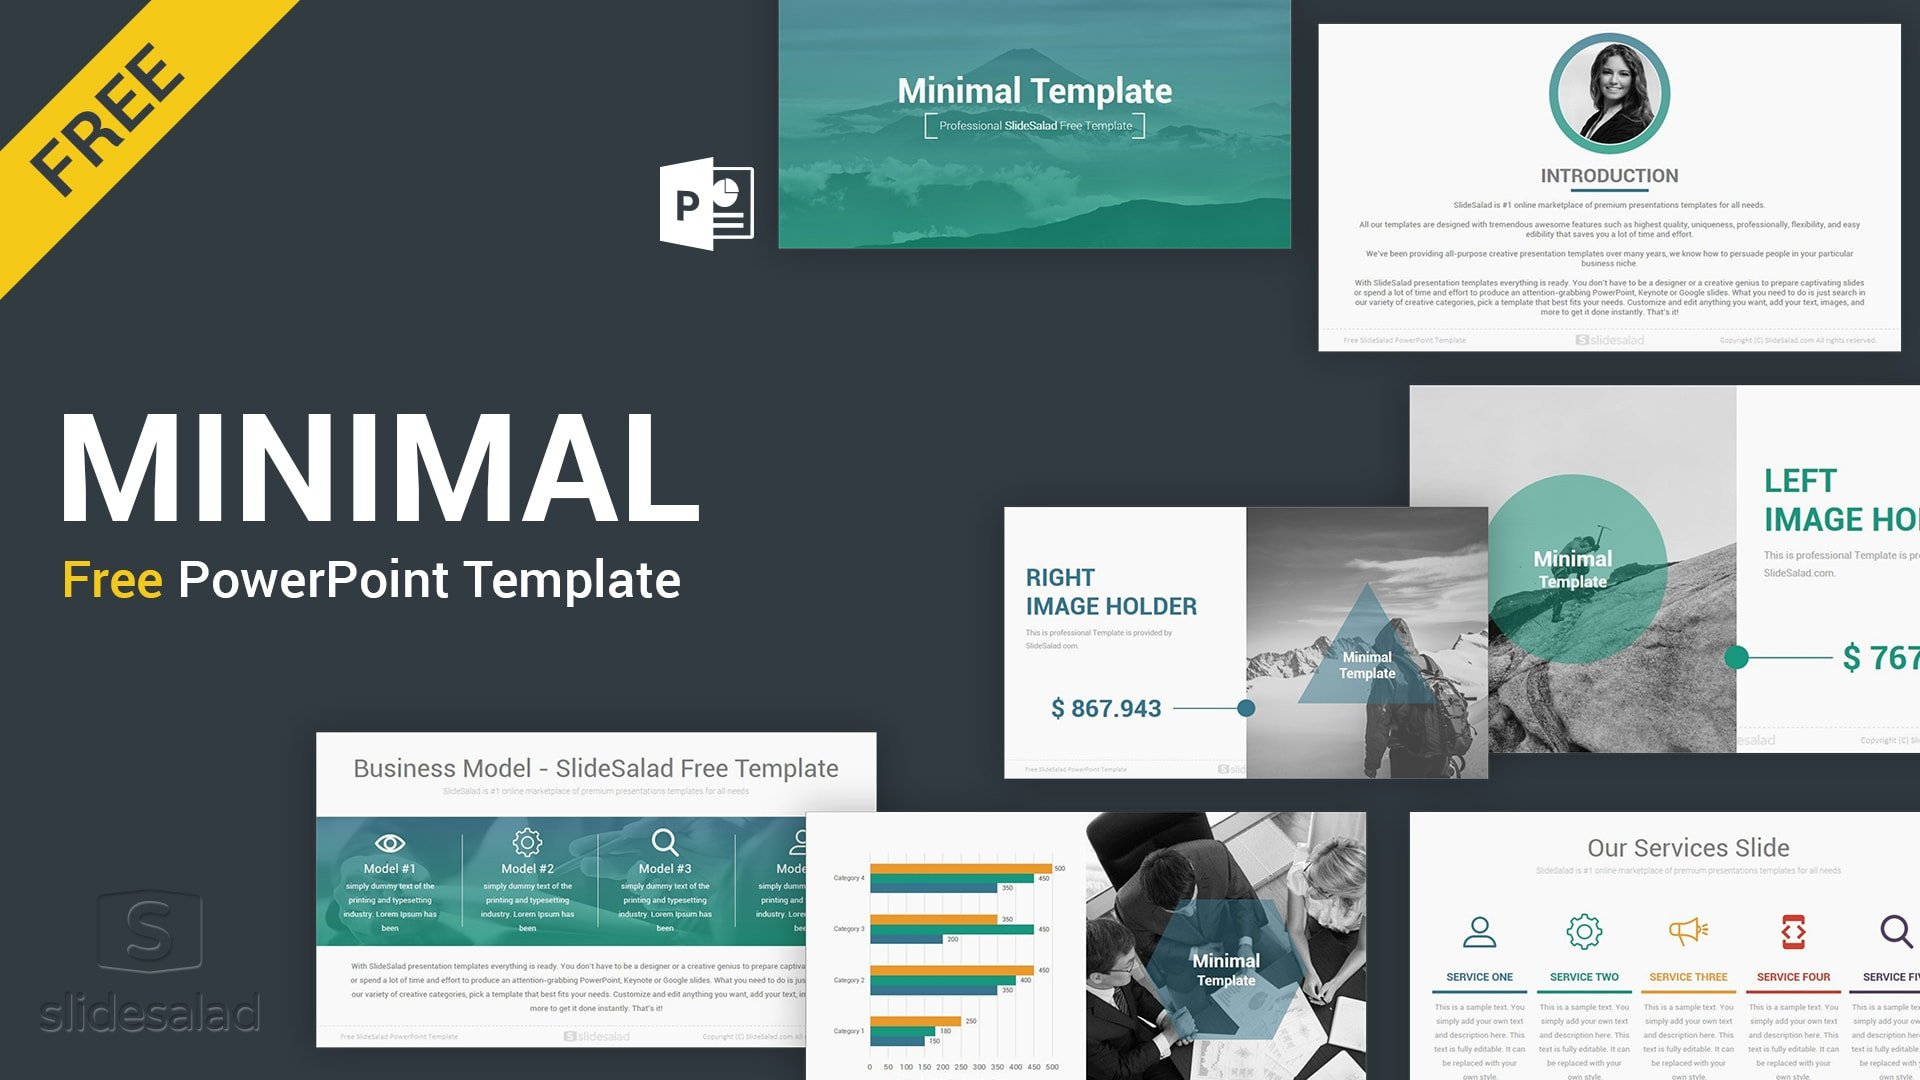 Ppt Presentation Template Free Best Free Presentation Templates Professional Designs 2019